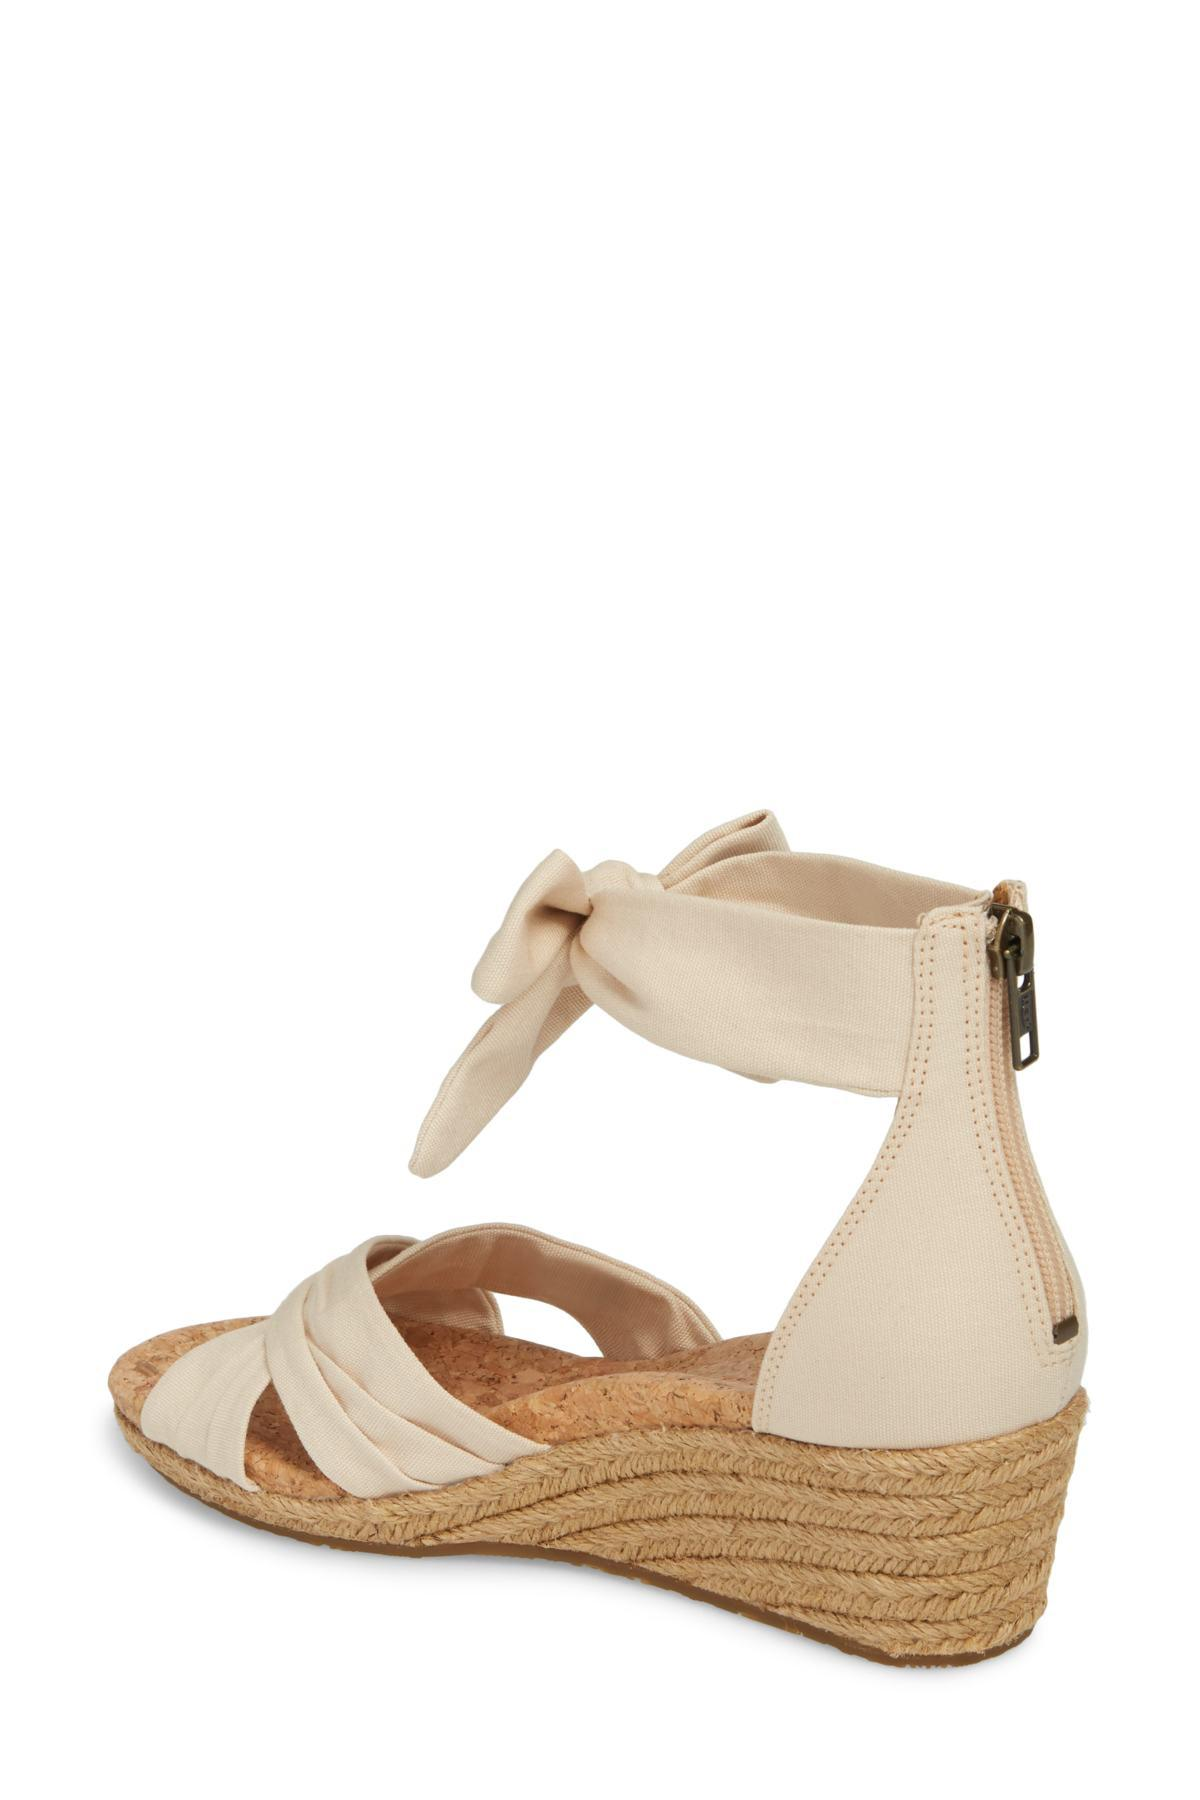 d89eb0bcbced Ugg - Multicolor (r) Traci Espadrille Wedge Sandal (women) - Lyst. View  fullscreen